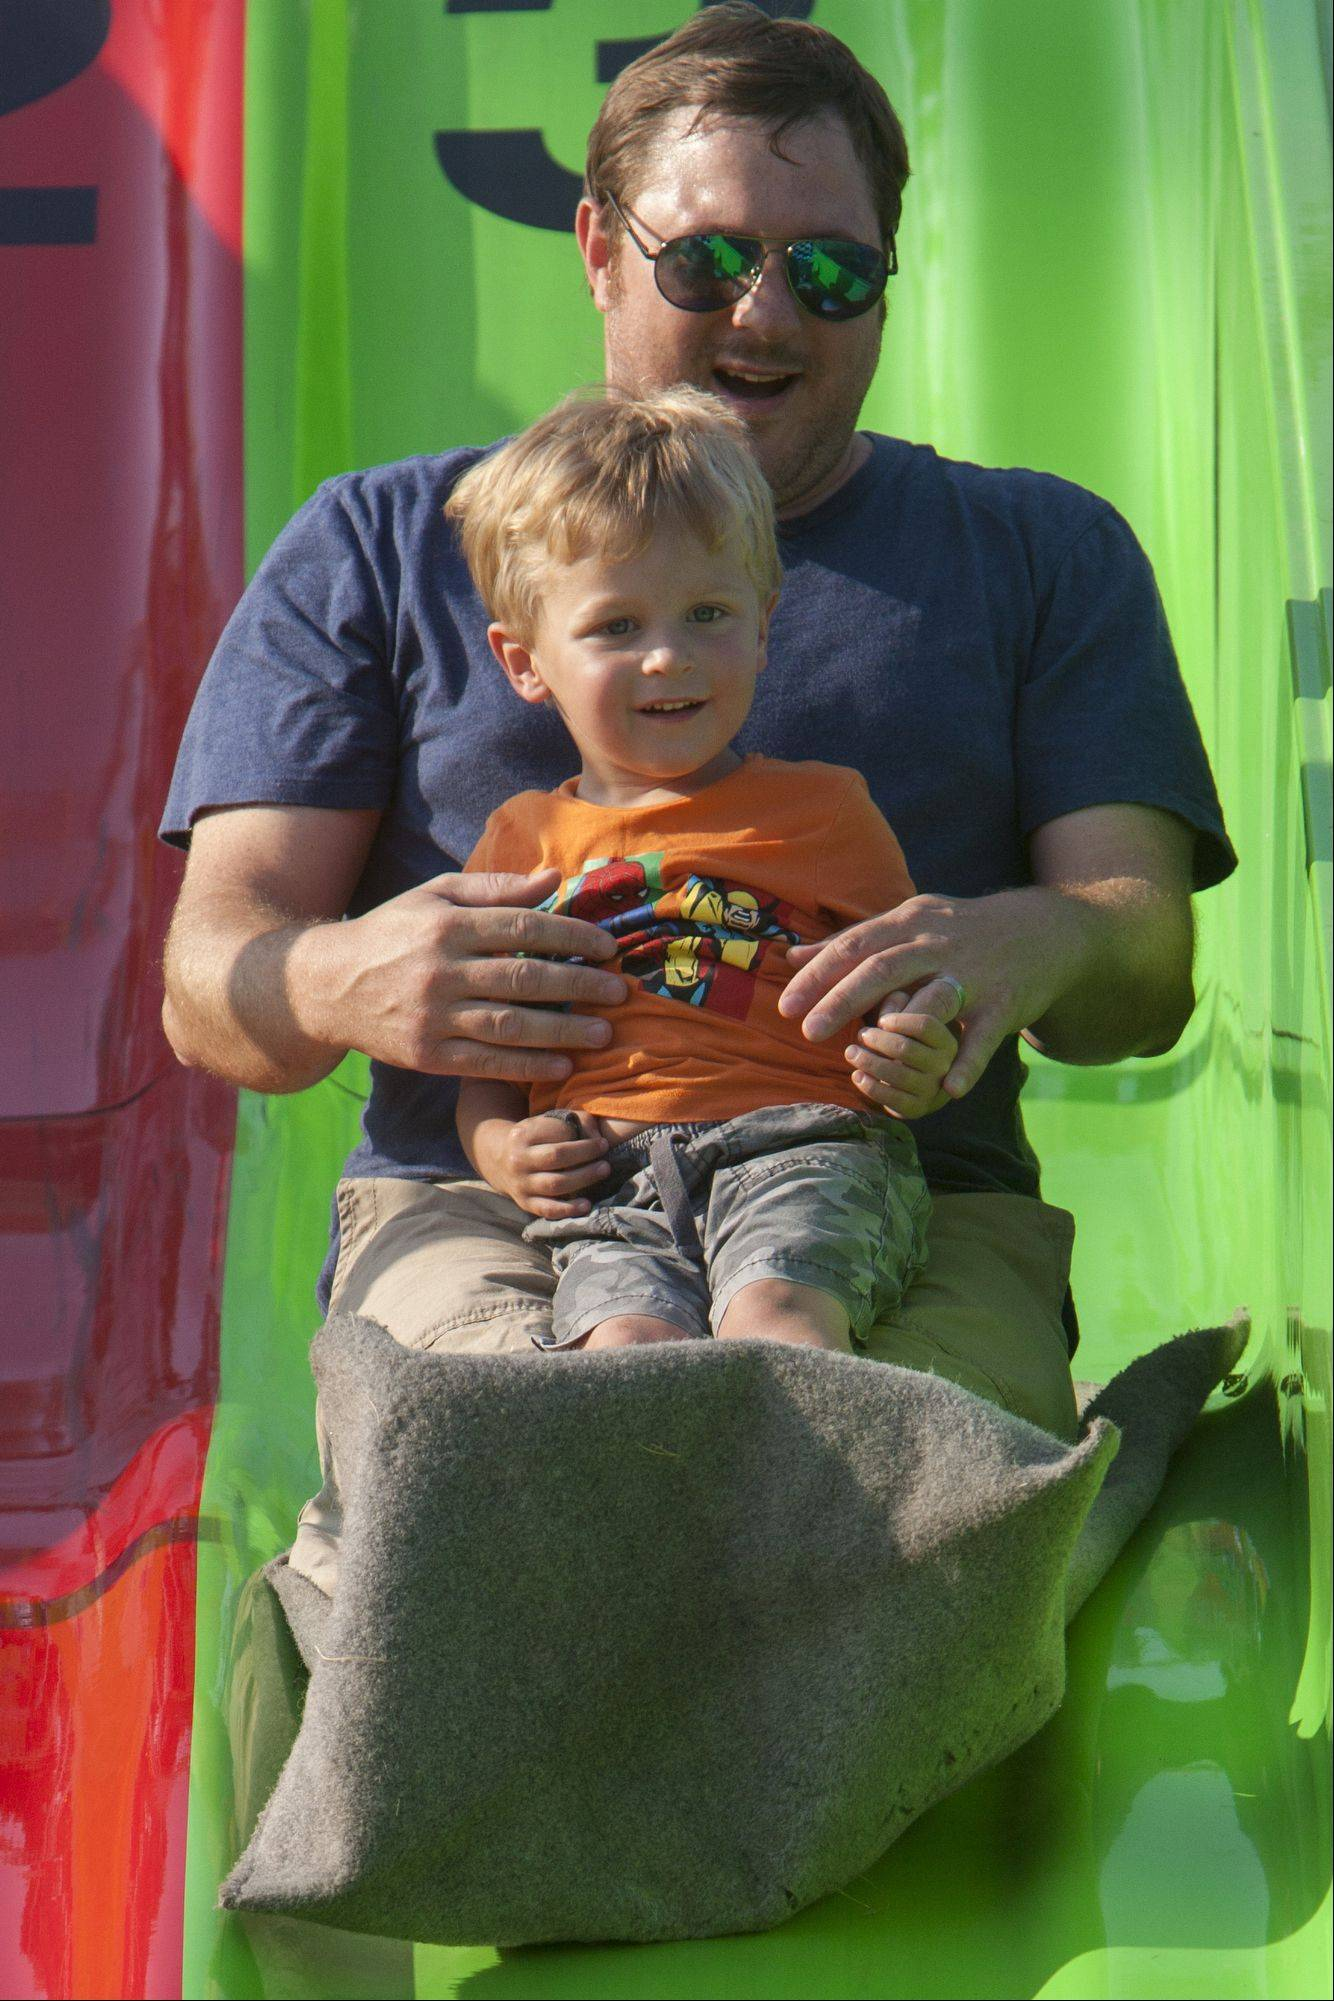 Tim Crenshaw and his son Jimmy, 3, of Mundelein, slide down a fun slide at Mundelein Community Days.